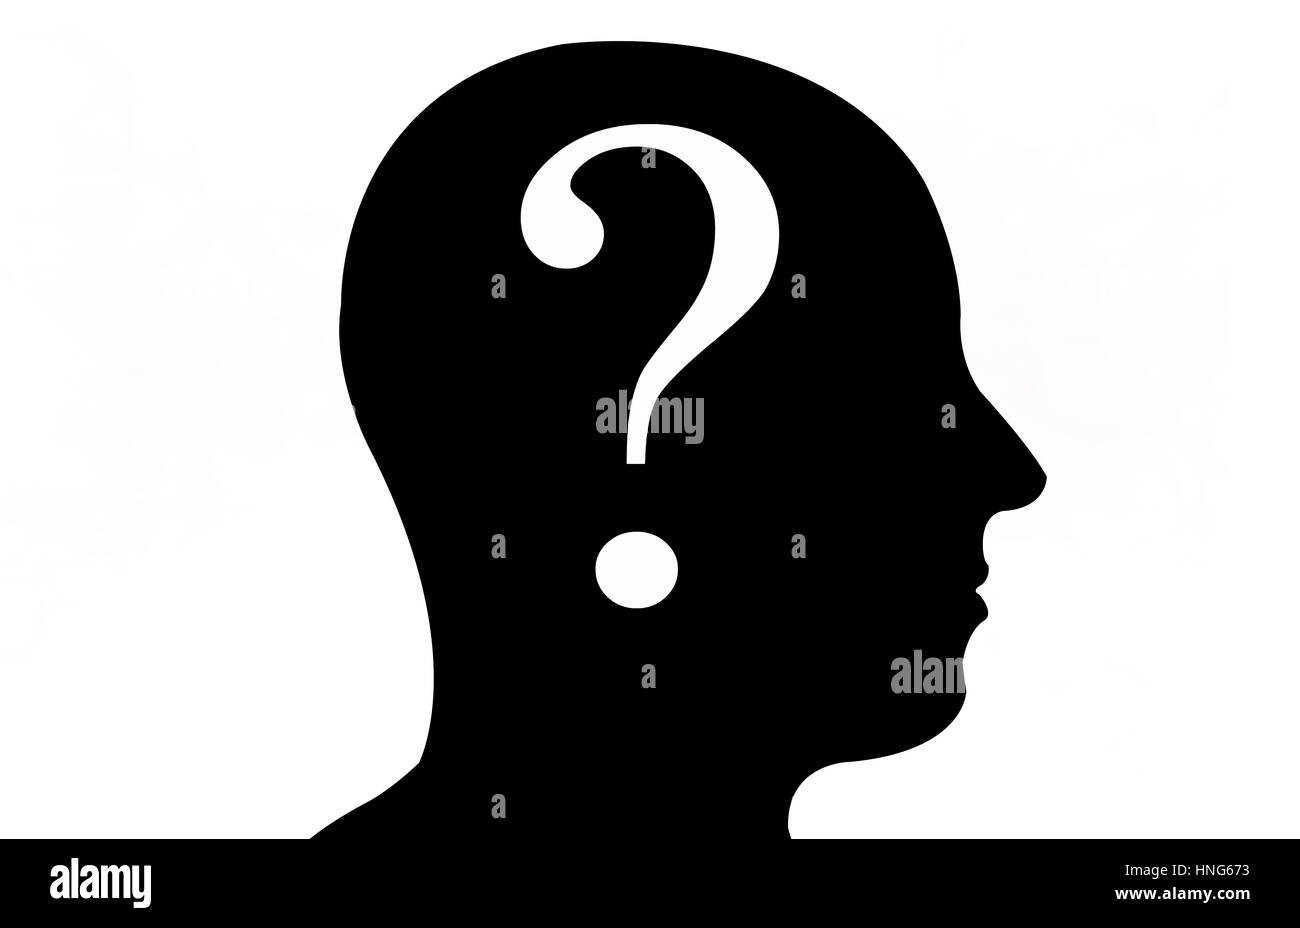 head silhouette with question mark - Stock Image